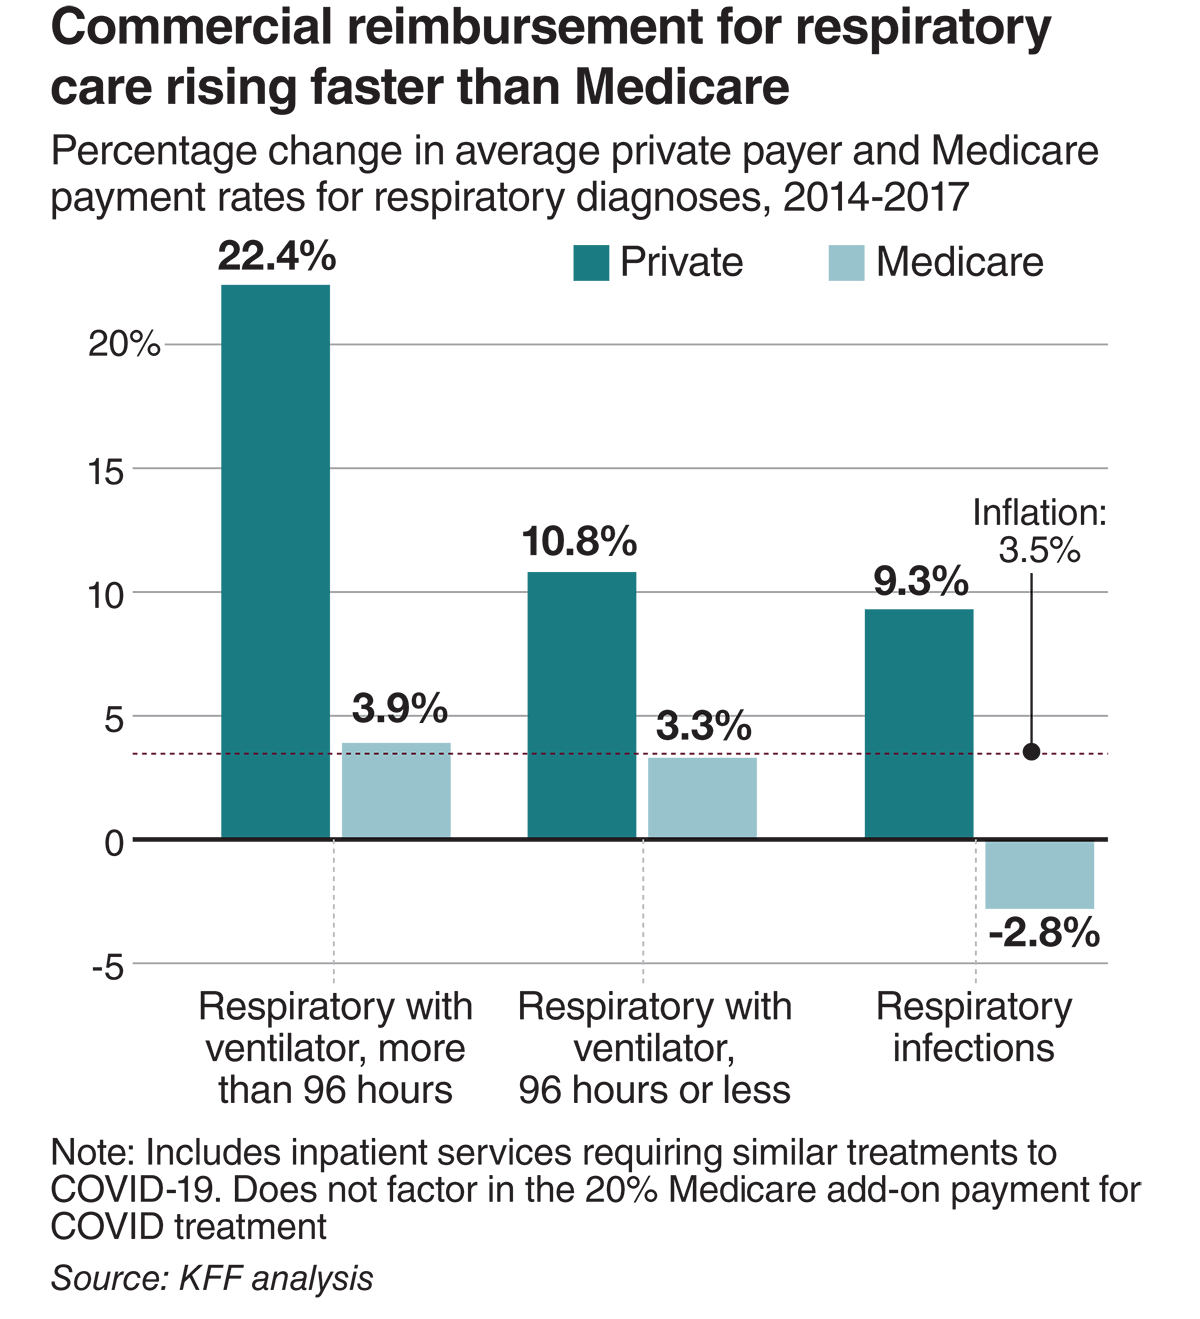 Commercial reimbursement for respiratory care rising faster than Medicare